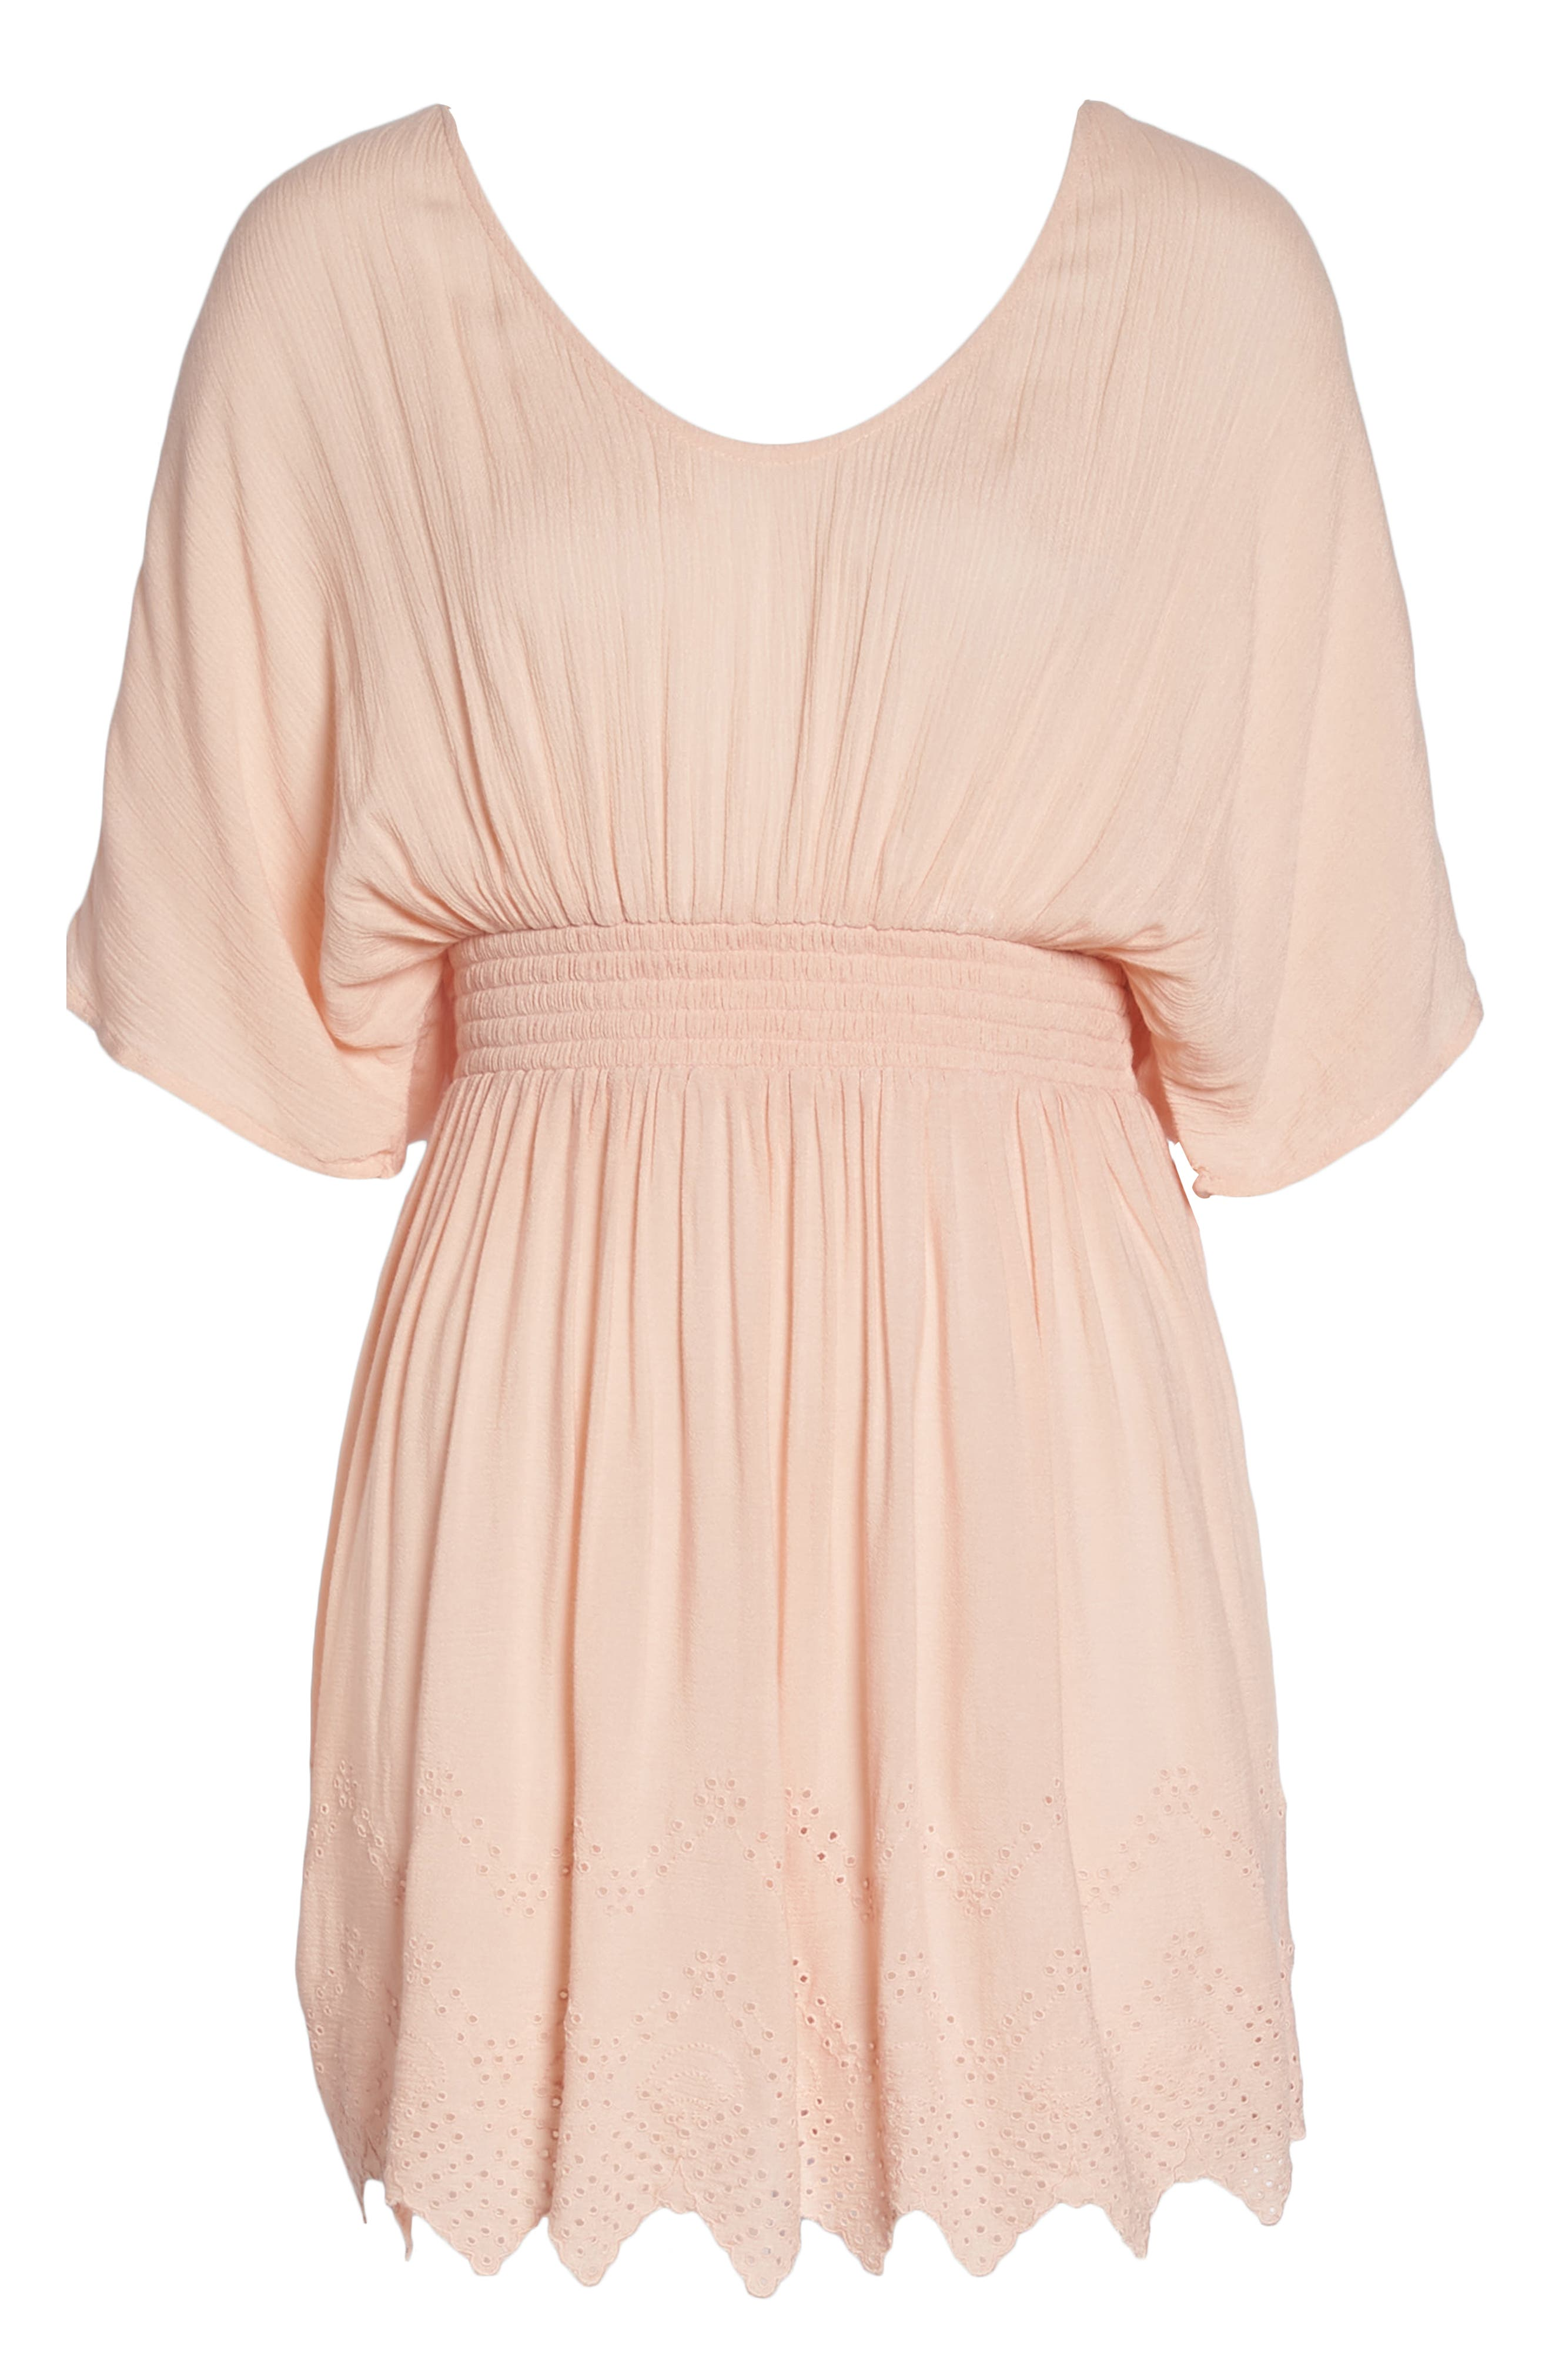 Goddess Cover-Up Dress,                             Alternate thumbnail 6, color,                             PINK ROSECLOUD